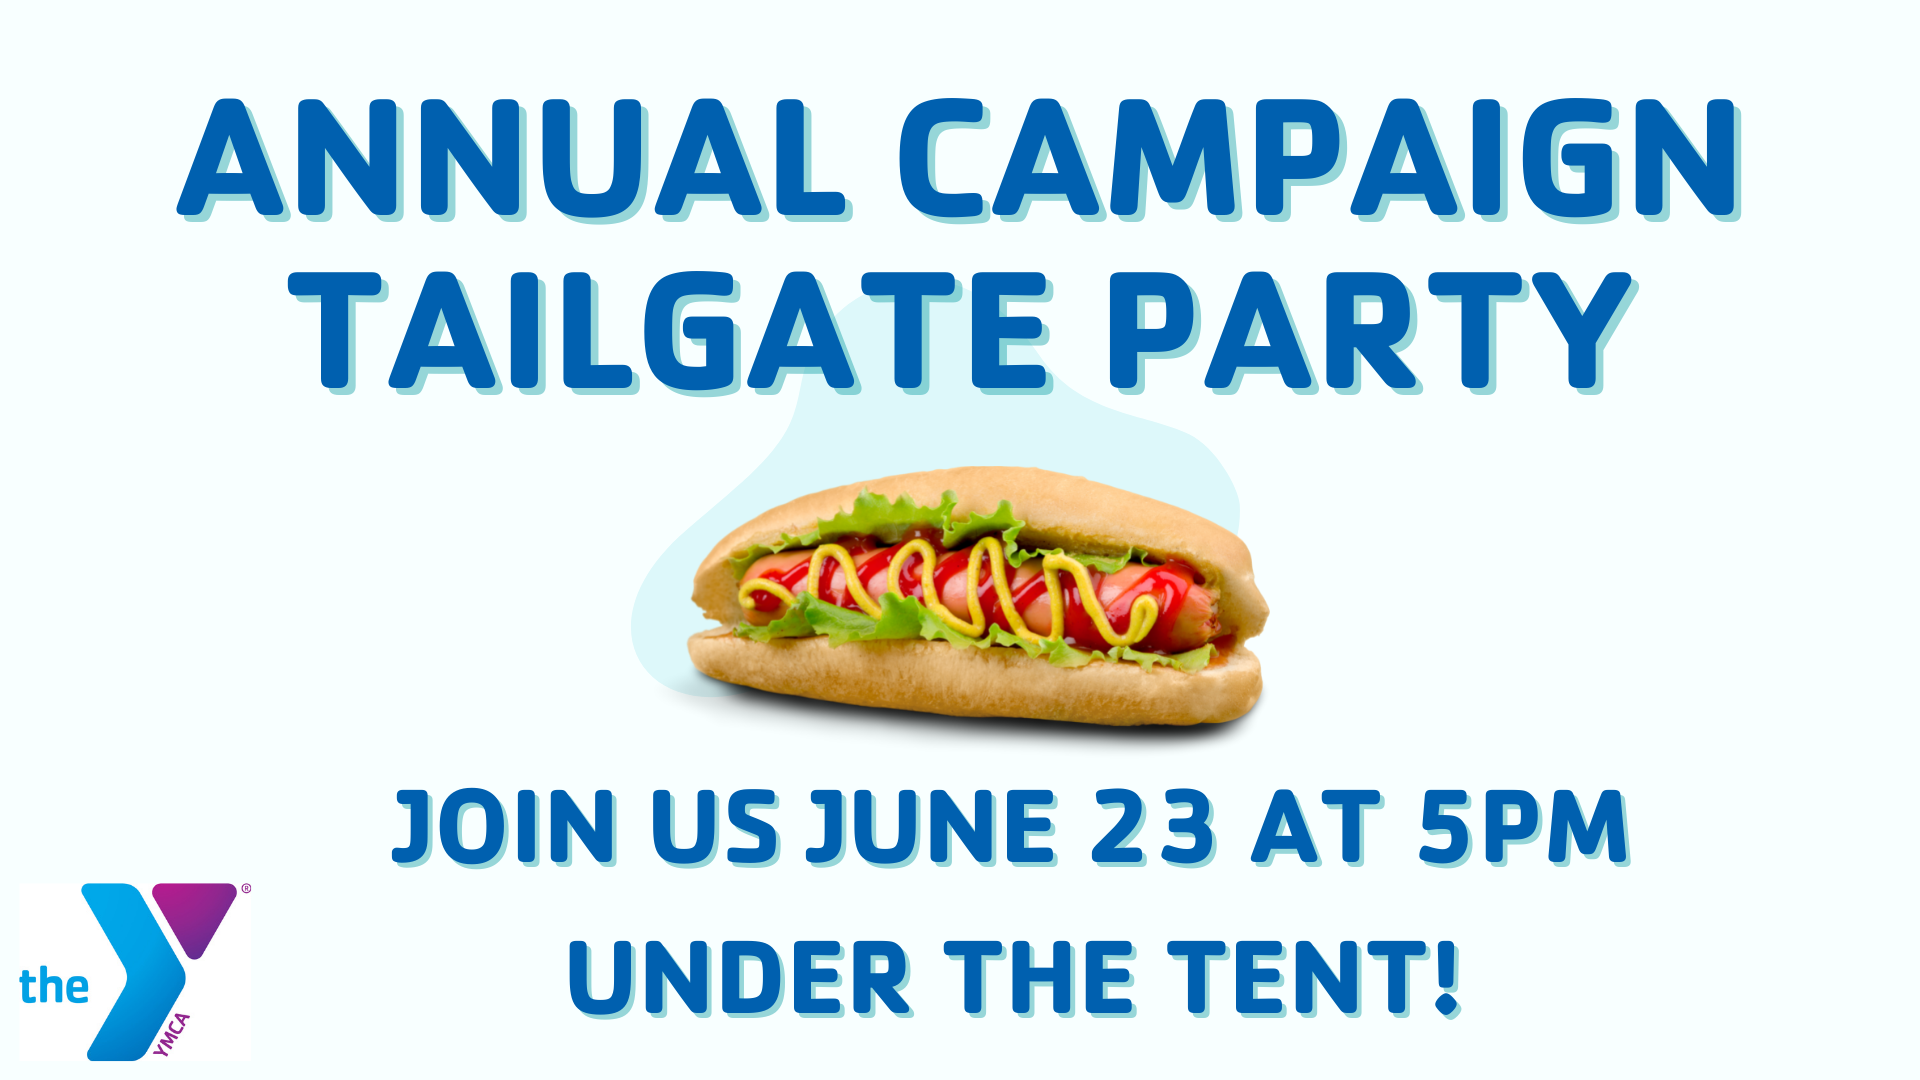 http://mtrymca.org/sites/mtrymca.org/assets/images/give/Annual-Campaign-Tailgate-Party-Image.png